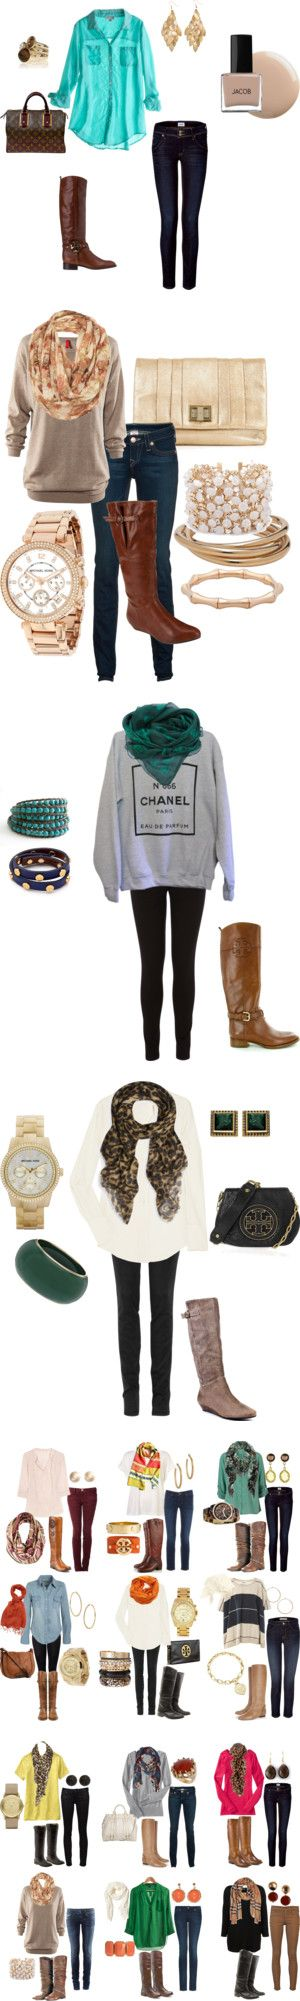 outfits for fall: Fall Clothing, Idea, Fall Style, Fall Wint, Tall Boots, Cute Outfits, Fall Looks, Fall Outfits, Fall Fashion